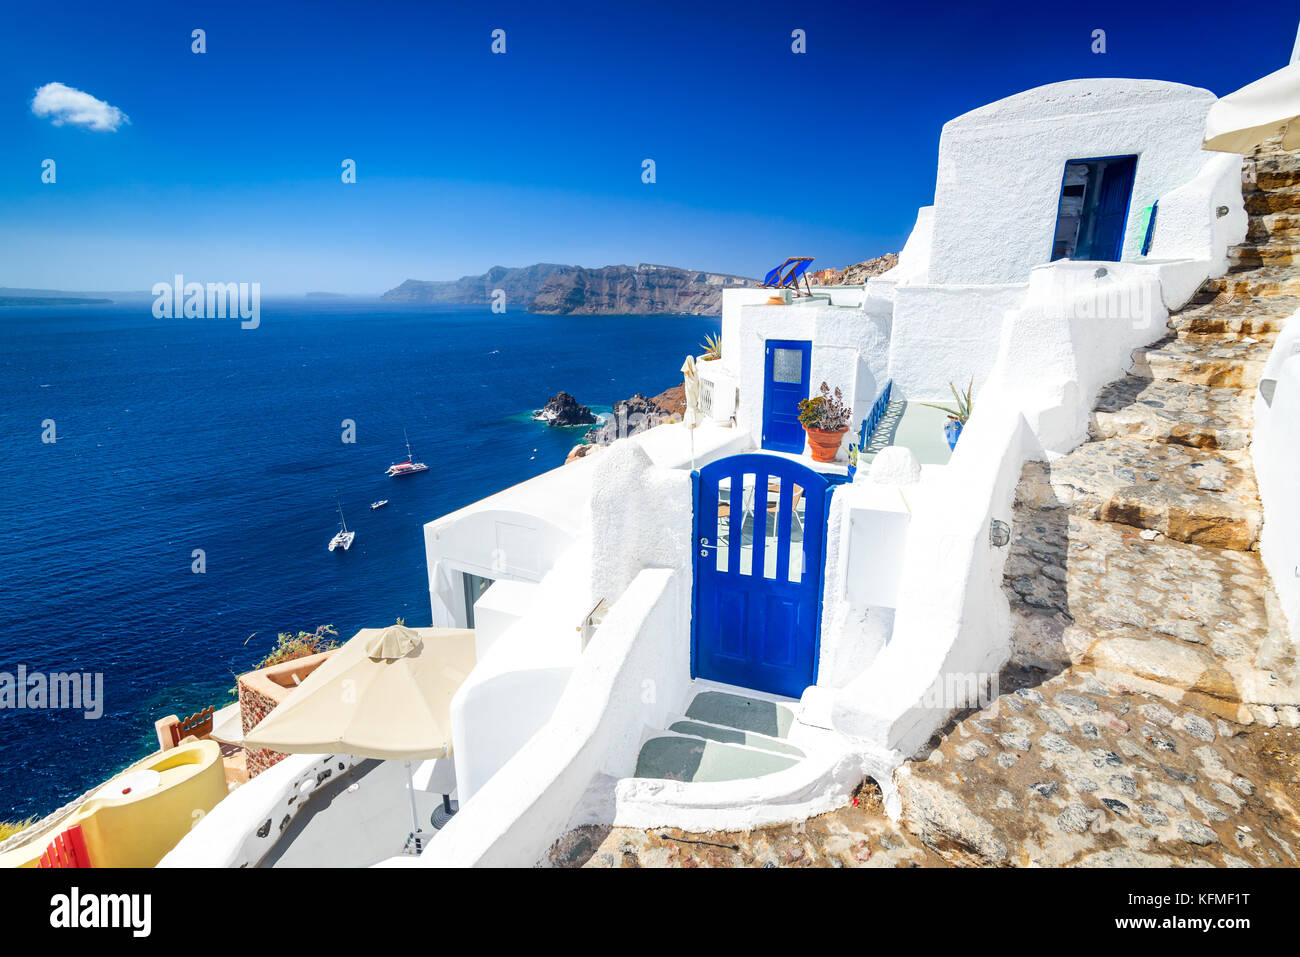 Santorini, Greece. Oia white willage cobbled street, famous attraction of Greek Cyclades Islands, Aegean Sea. - Stock Image